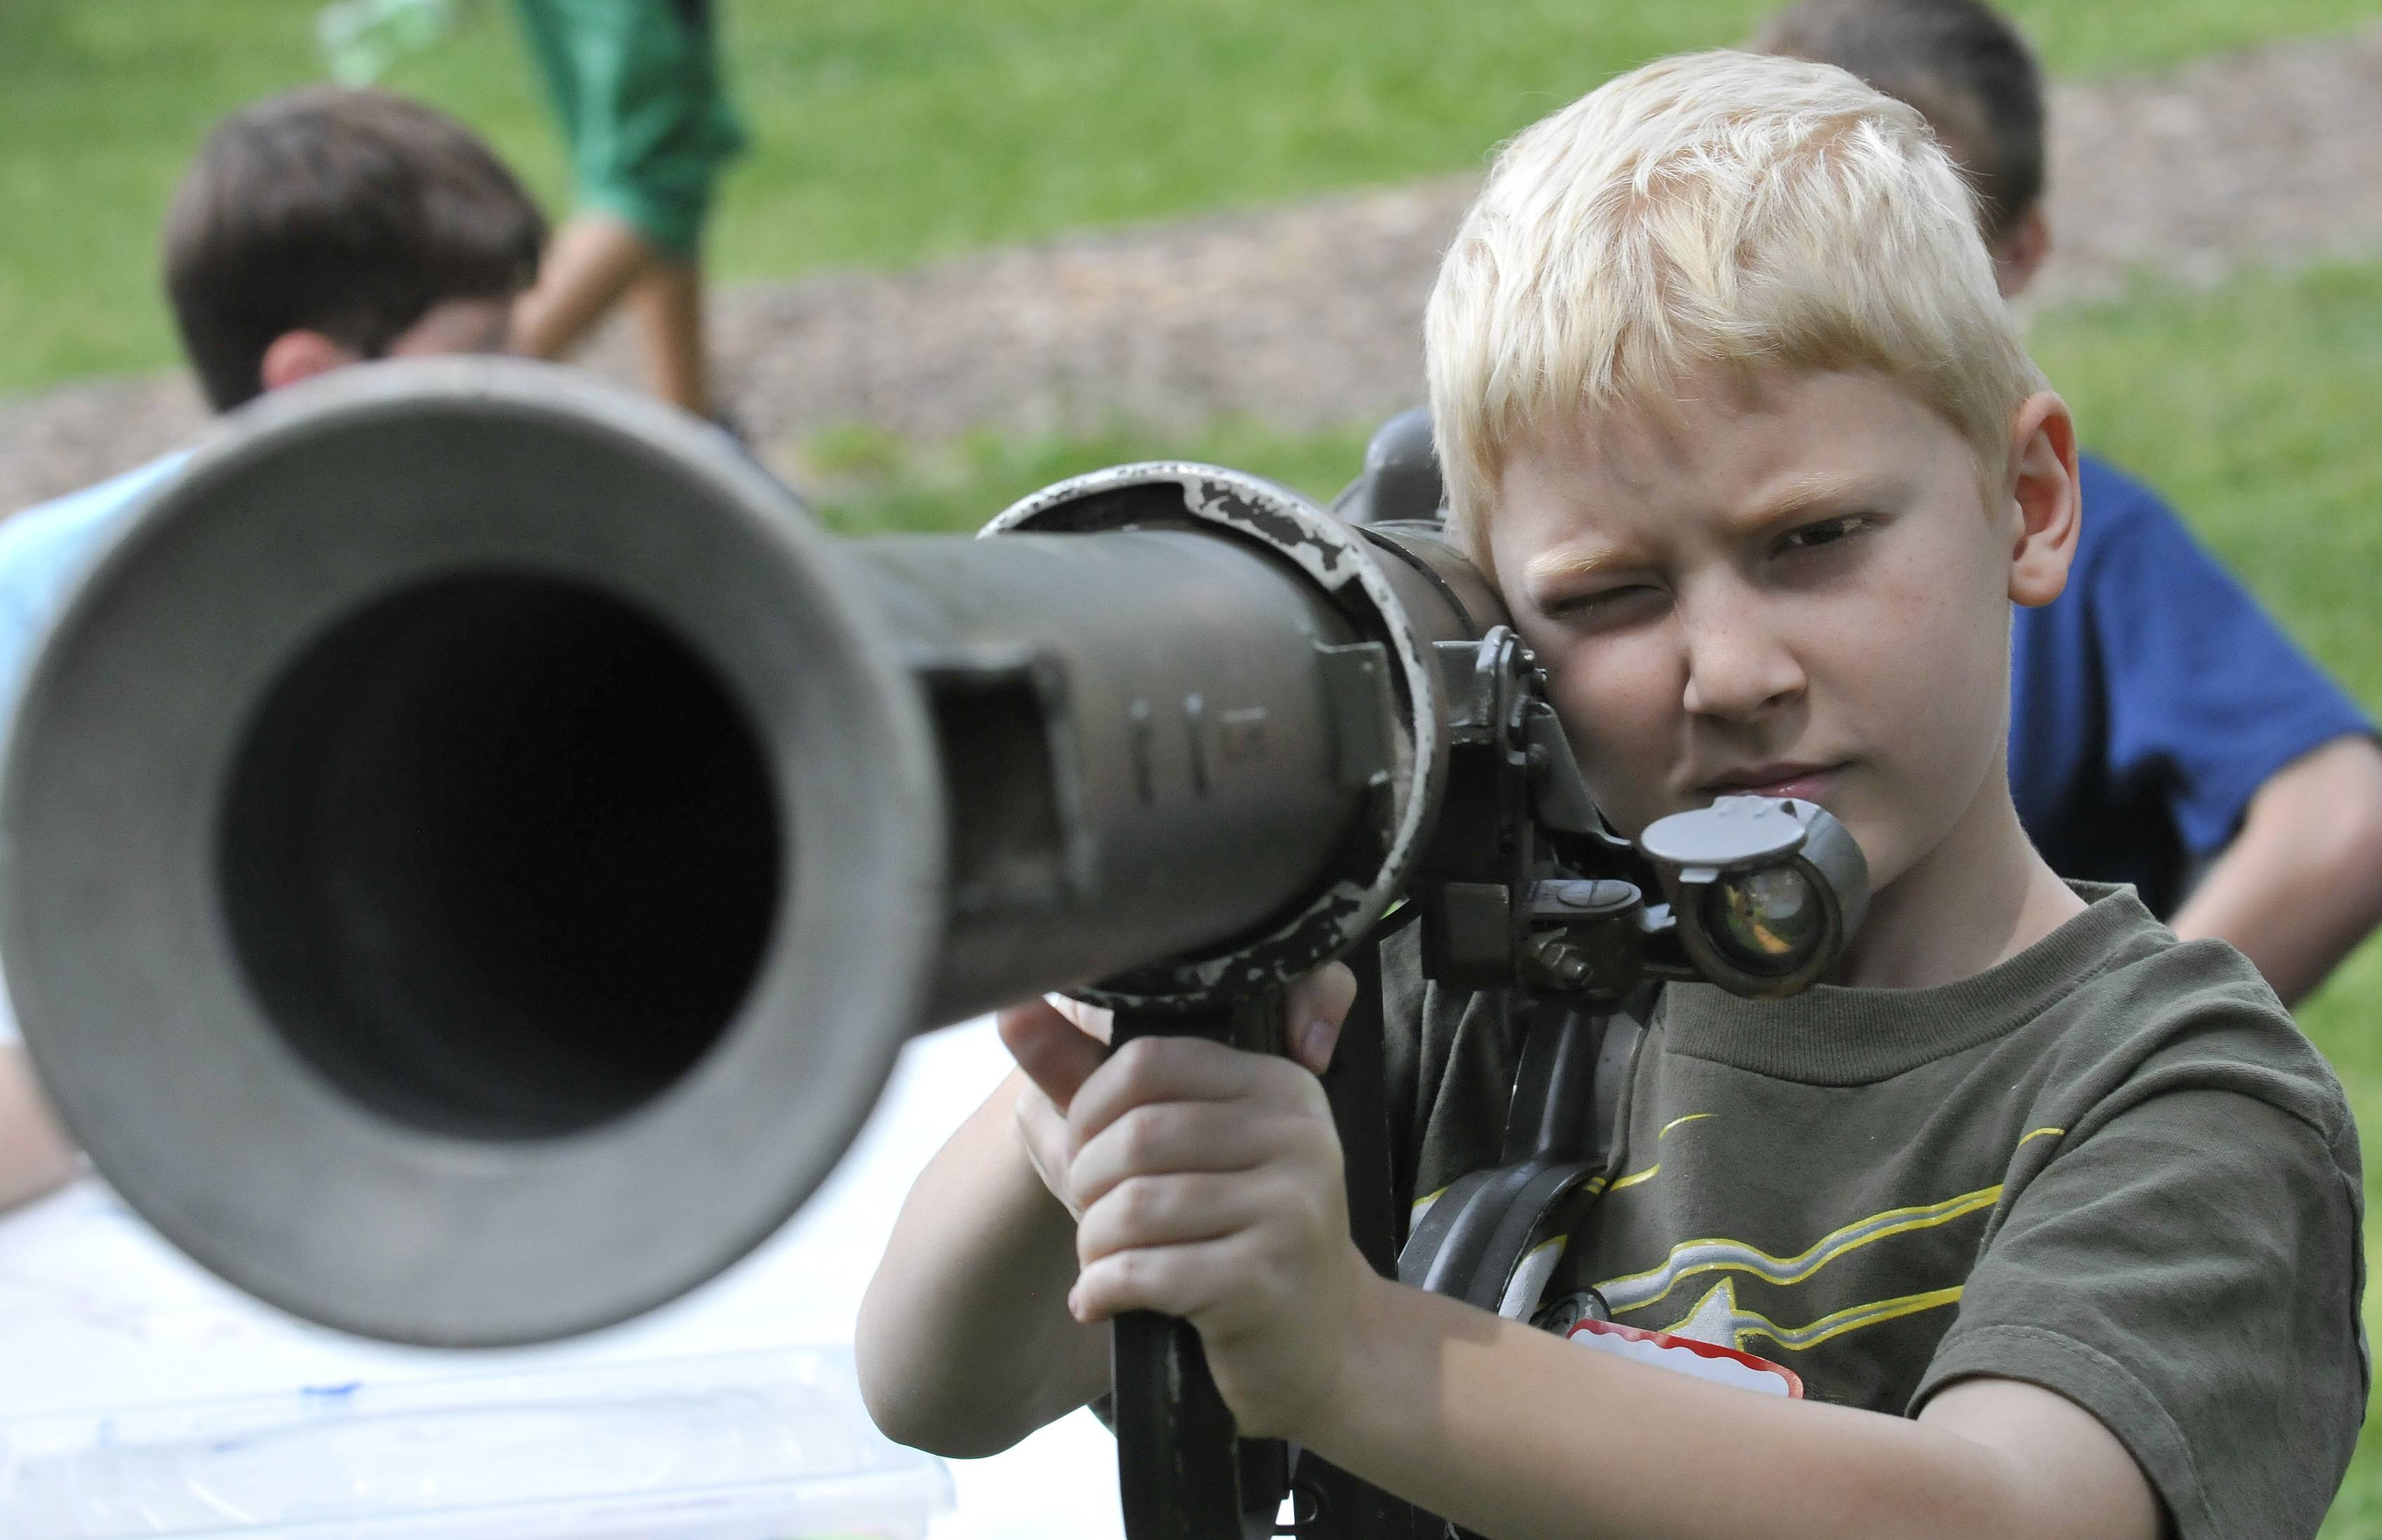 Caleb Watson of Wheaton shoulders a rocket launcher Wednesday as students ages 11 to 14 learned about military rockets and how they were used in the nation's wars during a summer program at the First Division Museum at Cantigny Park in Wheaton.